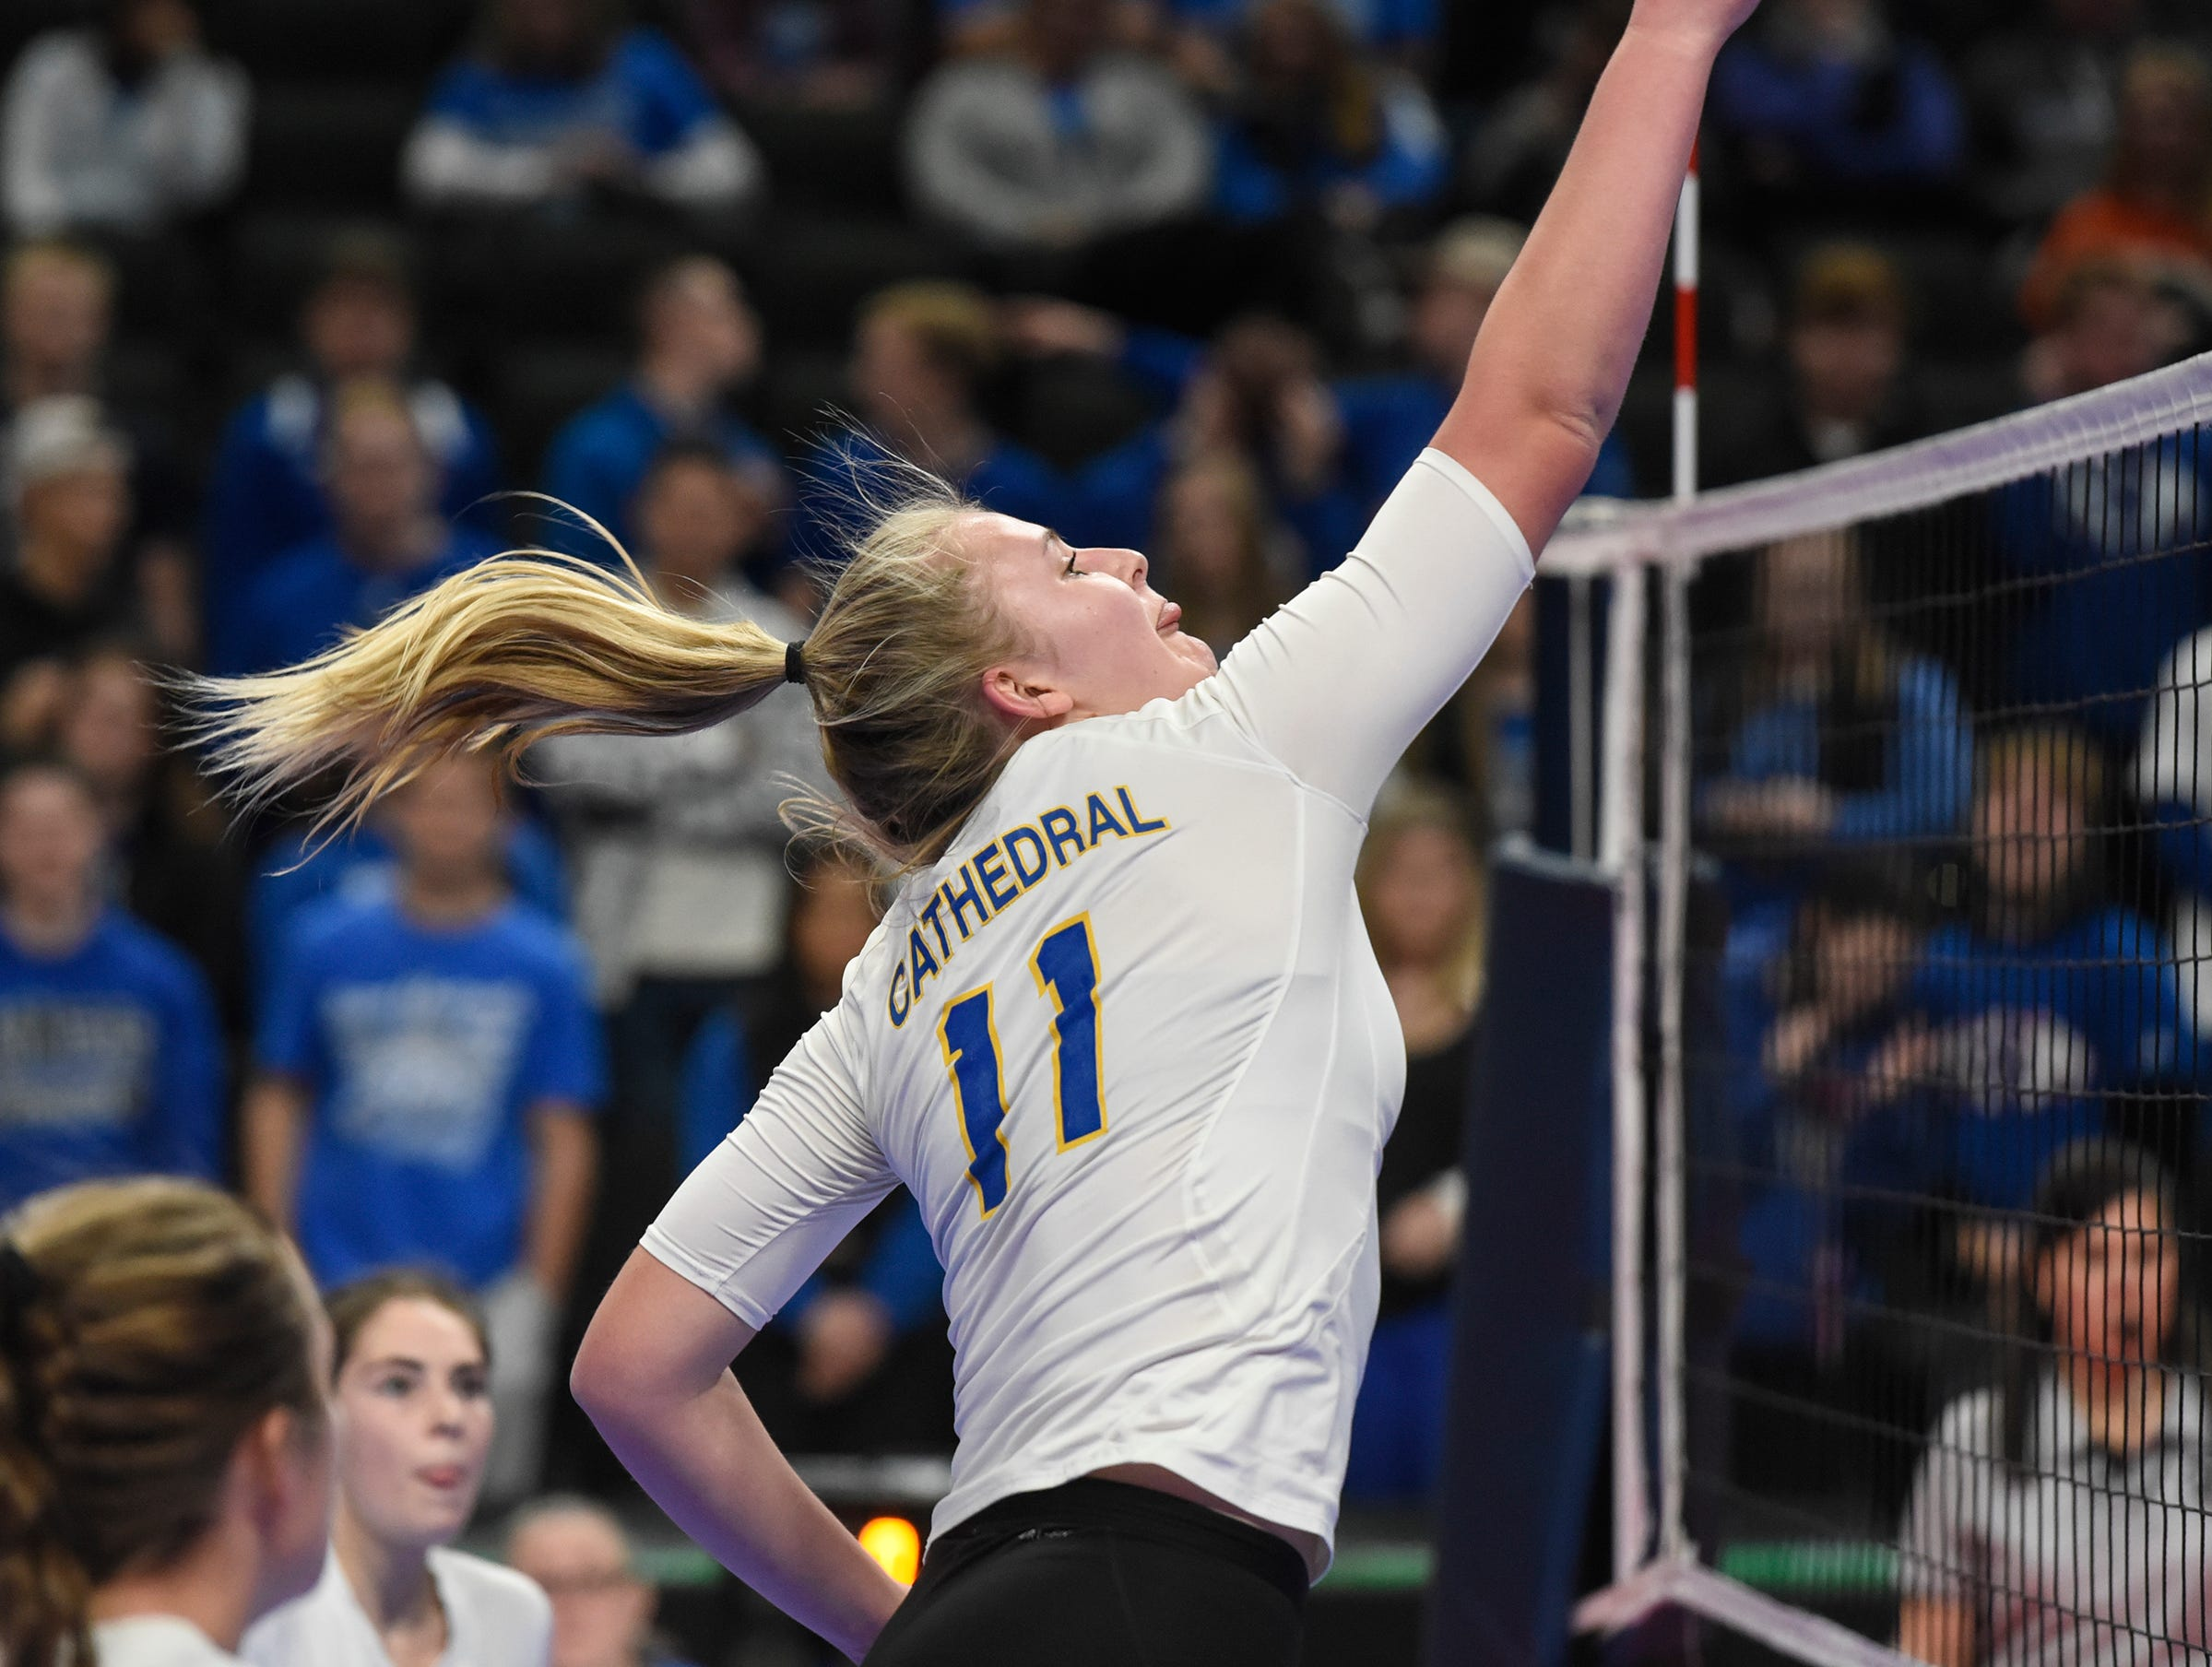 Cathedral's Hallie Hupf hits high over the net during the state Class 2A quarterfinals Thursday, Nov. 8, at the Xcel Energy Center in St. Paul.